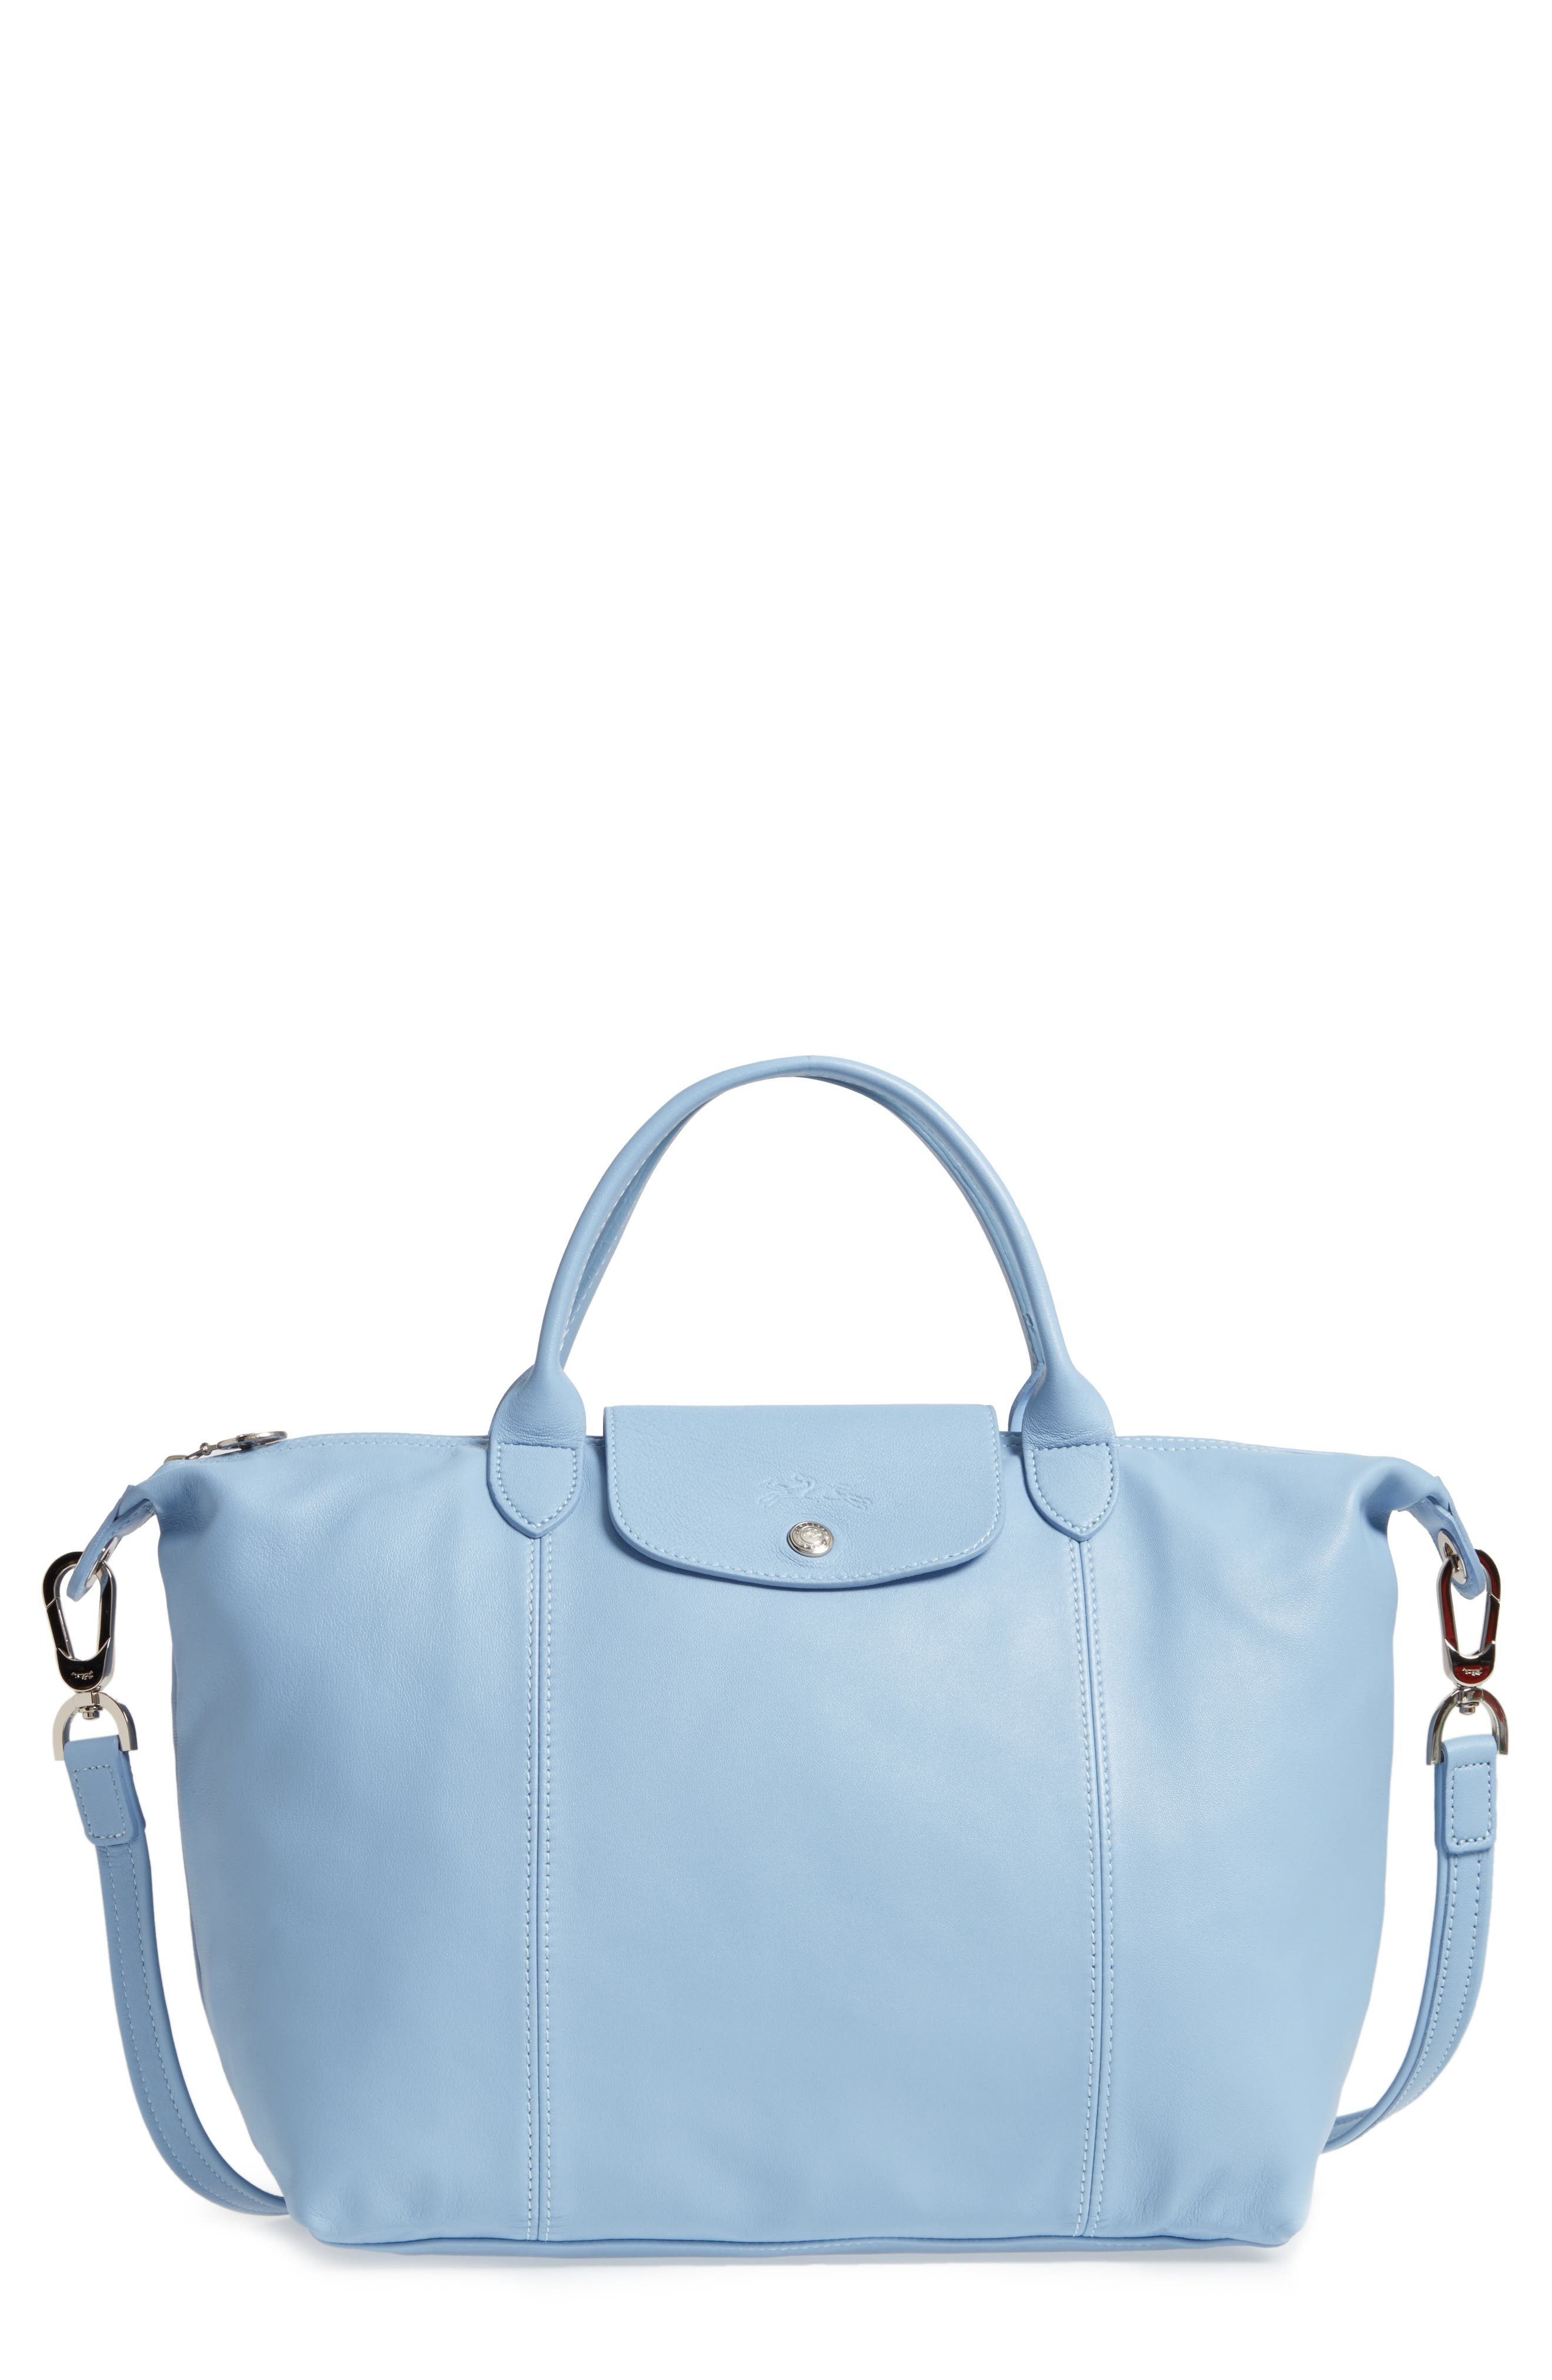 Medium 'Le Pliage Cuir' Leather Top Handle Tote,                             Main thumbnail 3, color,